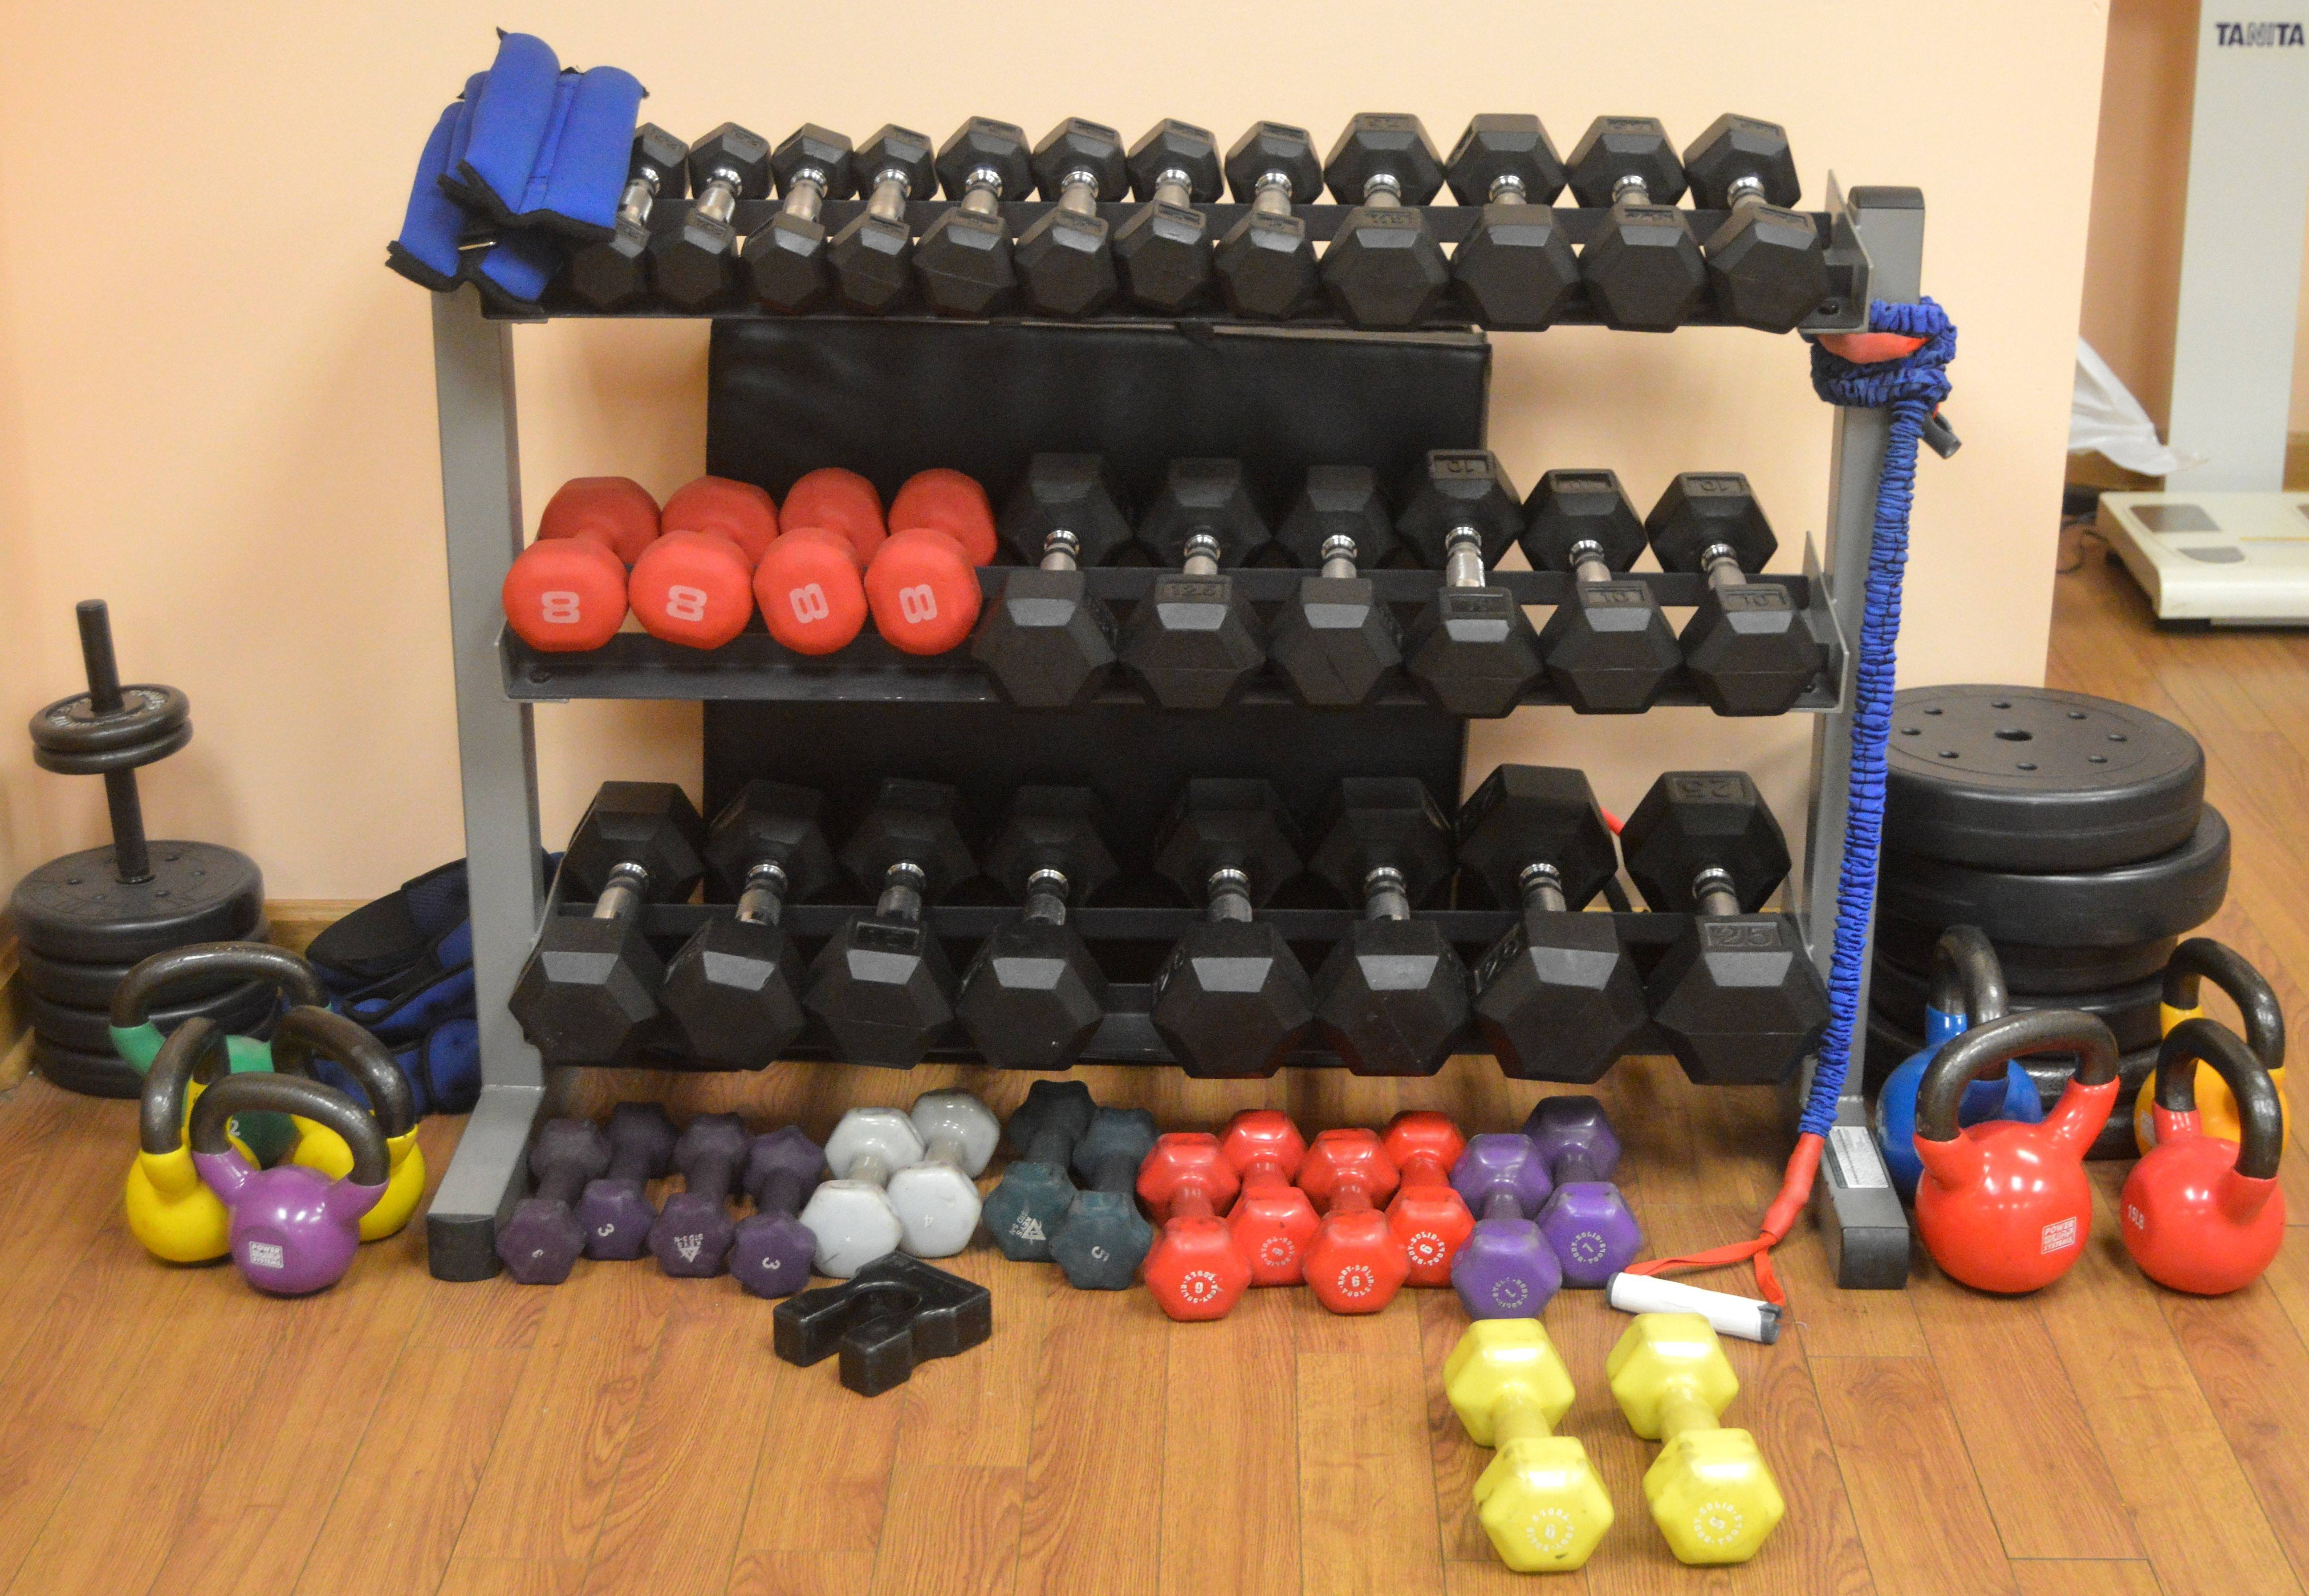 31c1dcb17973d6aceec0_Fit_to_Be_Fab_-_weights.JPG